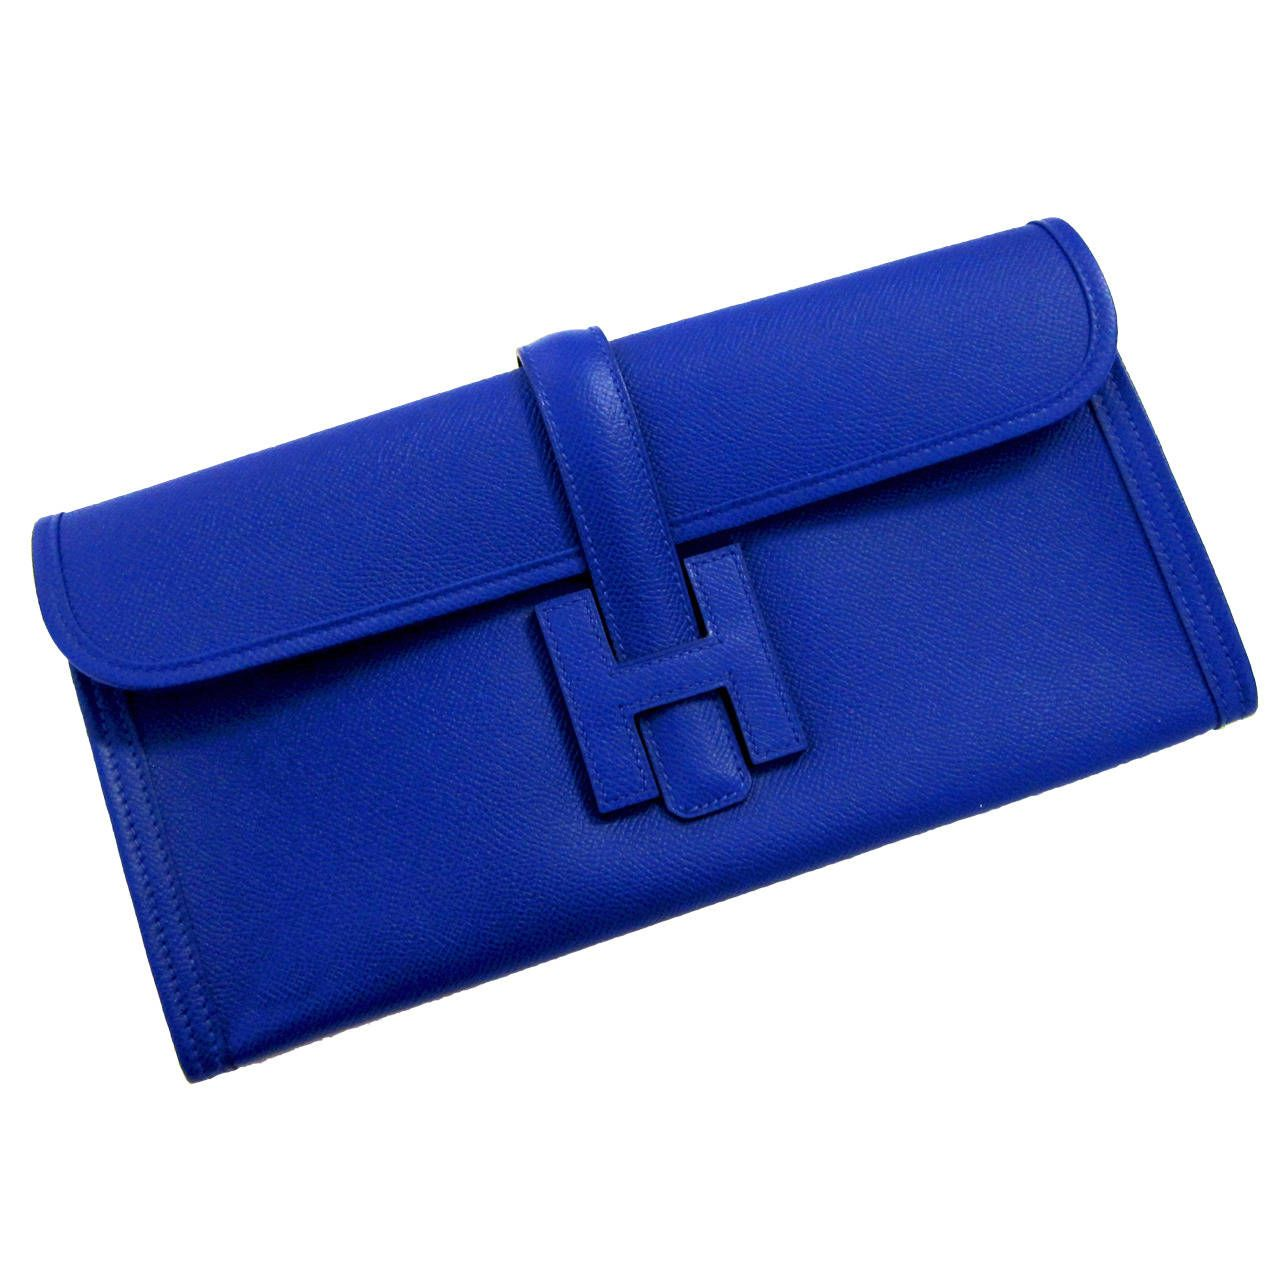 c6b2b8155d Hermes Blue Electric Jige Elan Clutch Electrifying | From a collection of  rare vintage clutches at